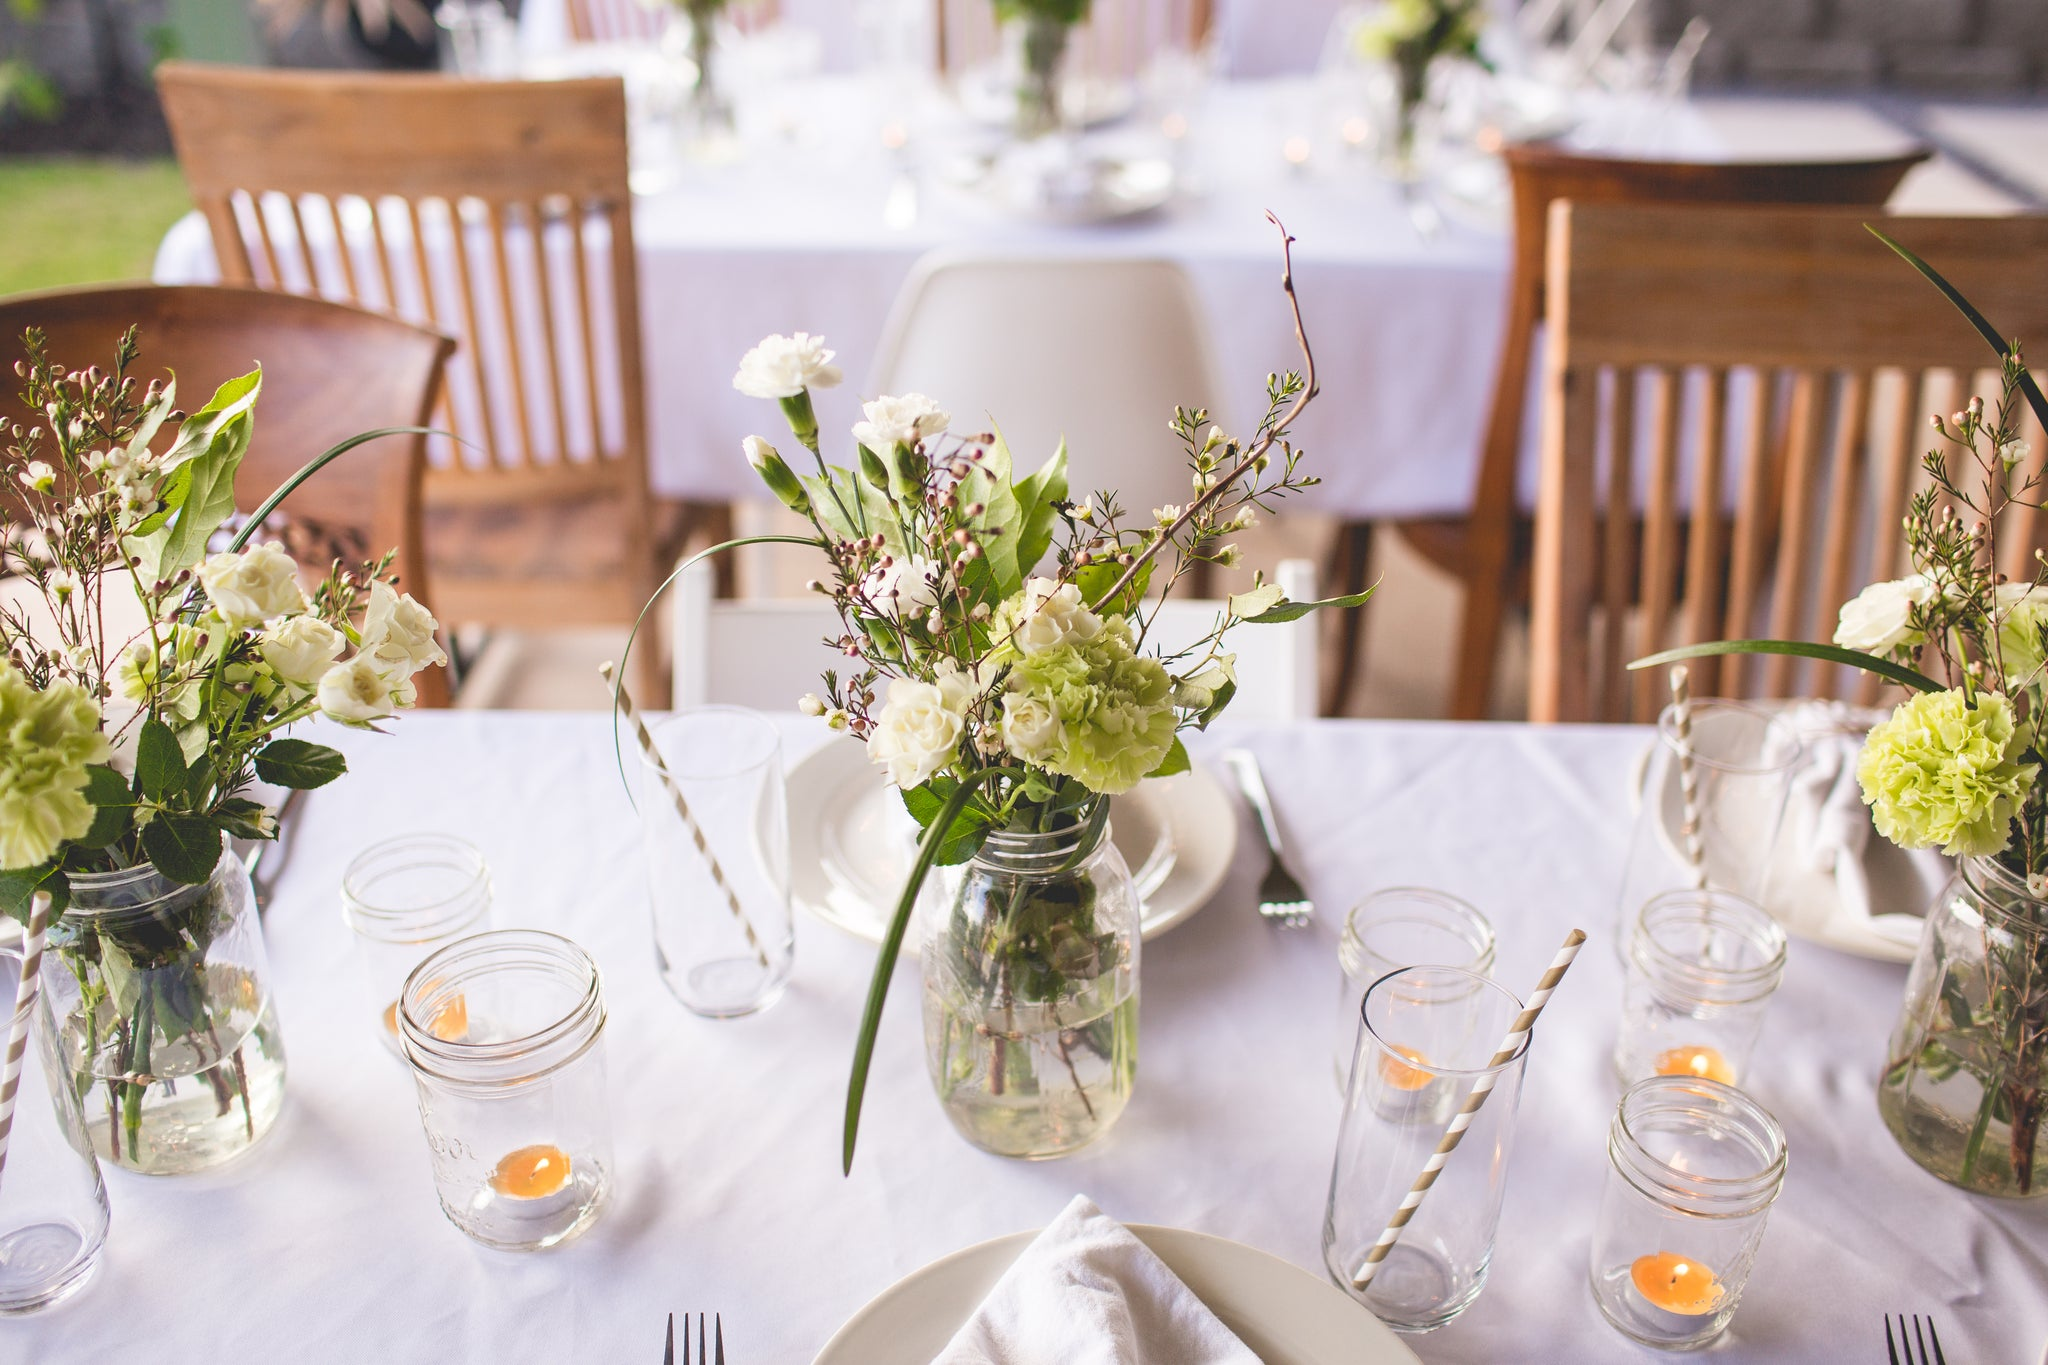 Tips for Throwing a Summer Outdoor Dining Soiree